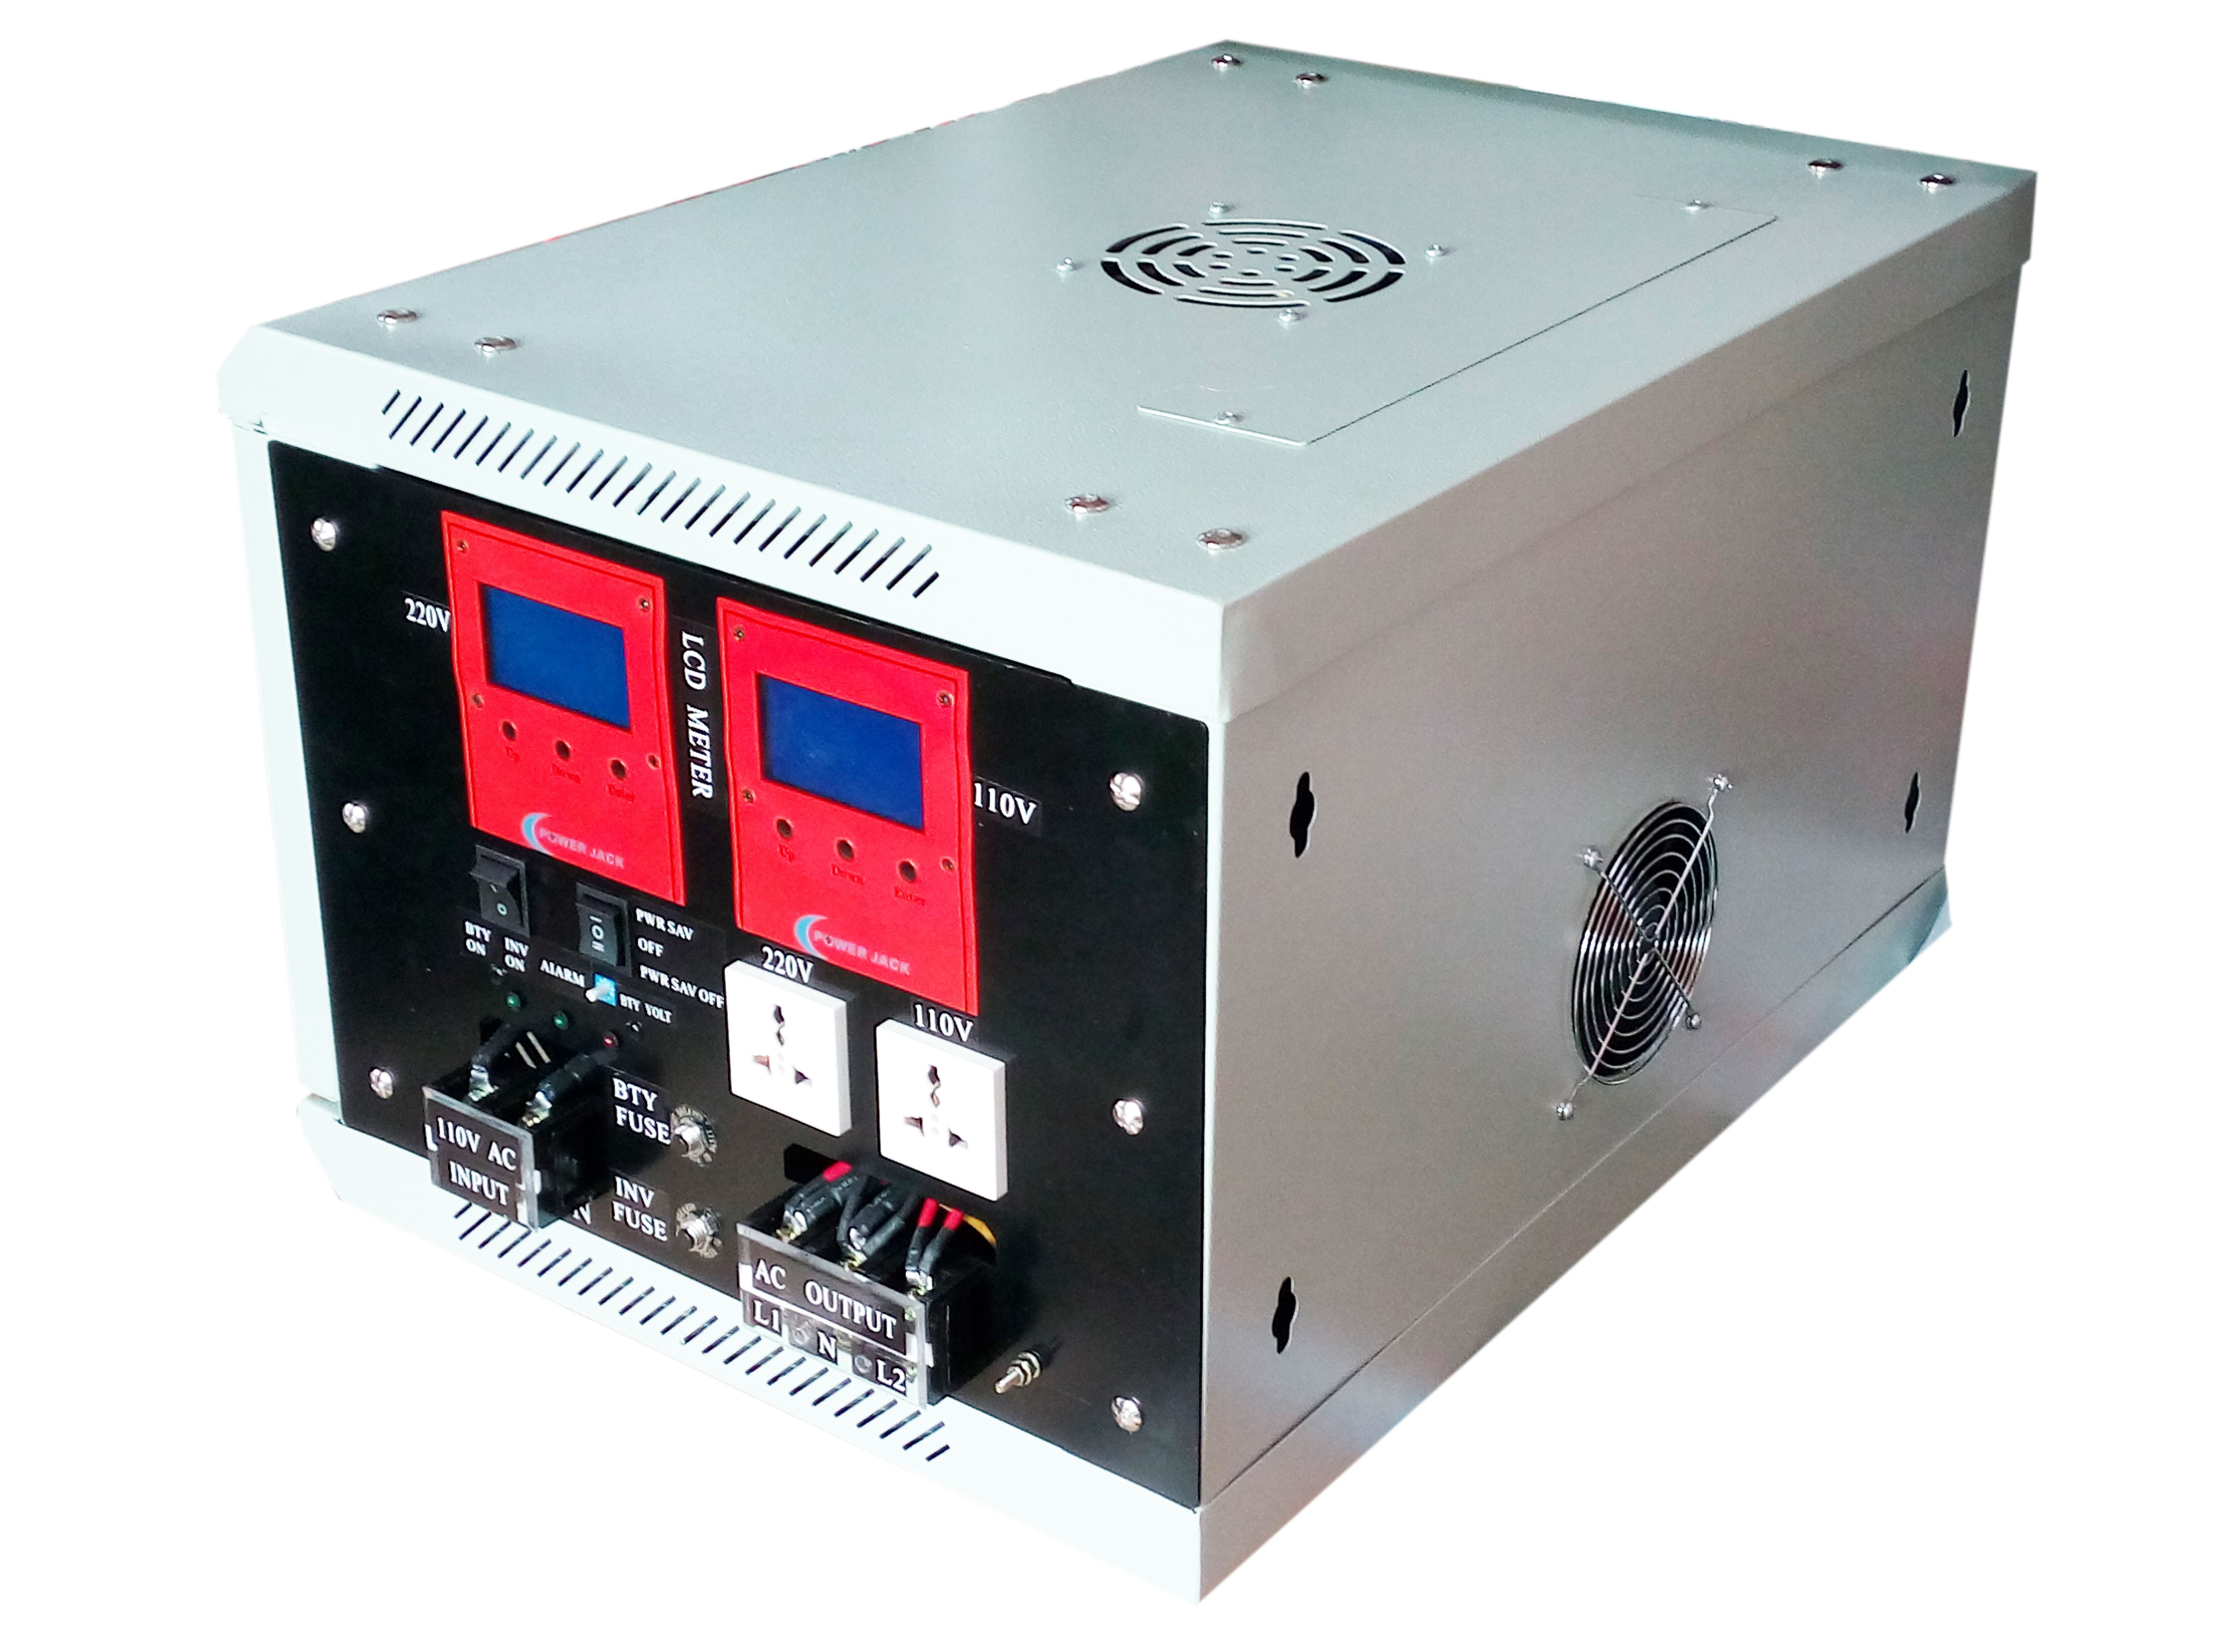 Power Inverters 5000w Lf Psw Solar Inverter Dc 24v Ac 500w Mosfet From 12v To 110v 220v Using Current Also Has Many Benefits Over Therefore It Always Helps Invest In